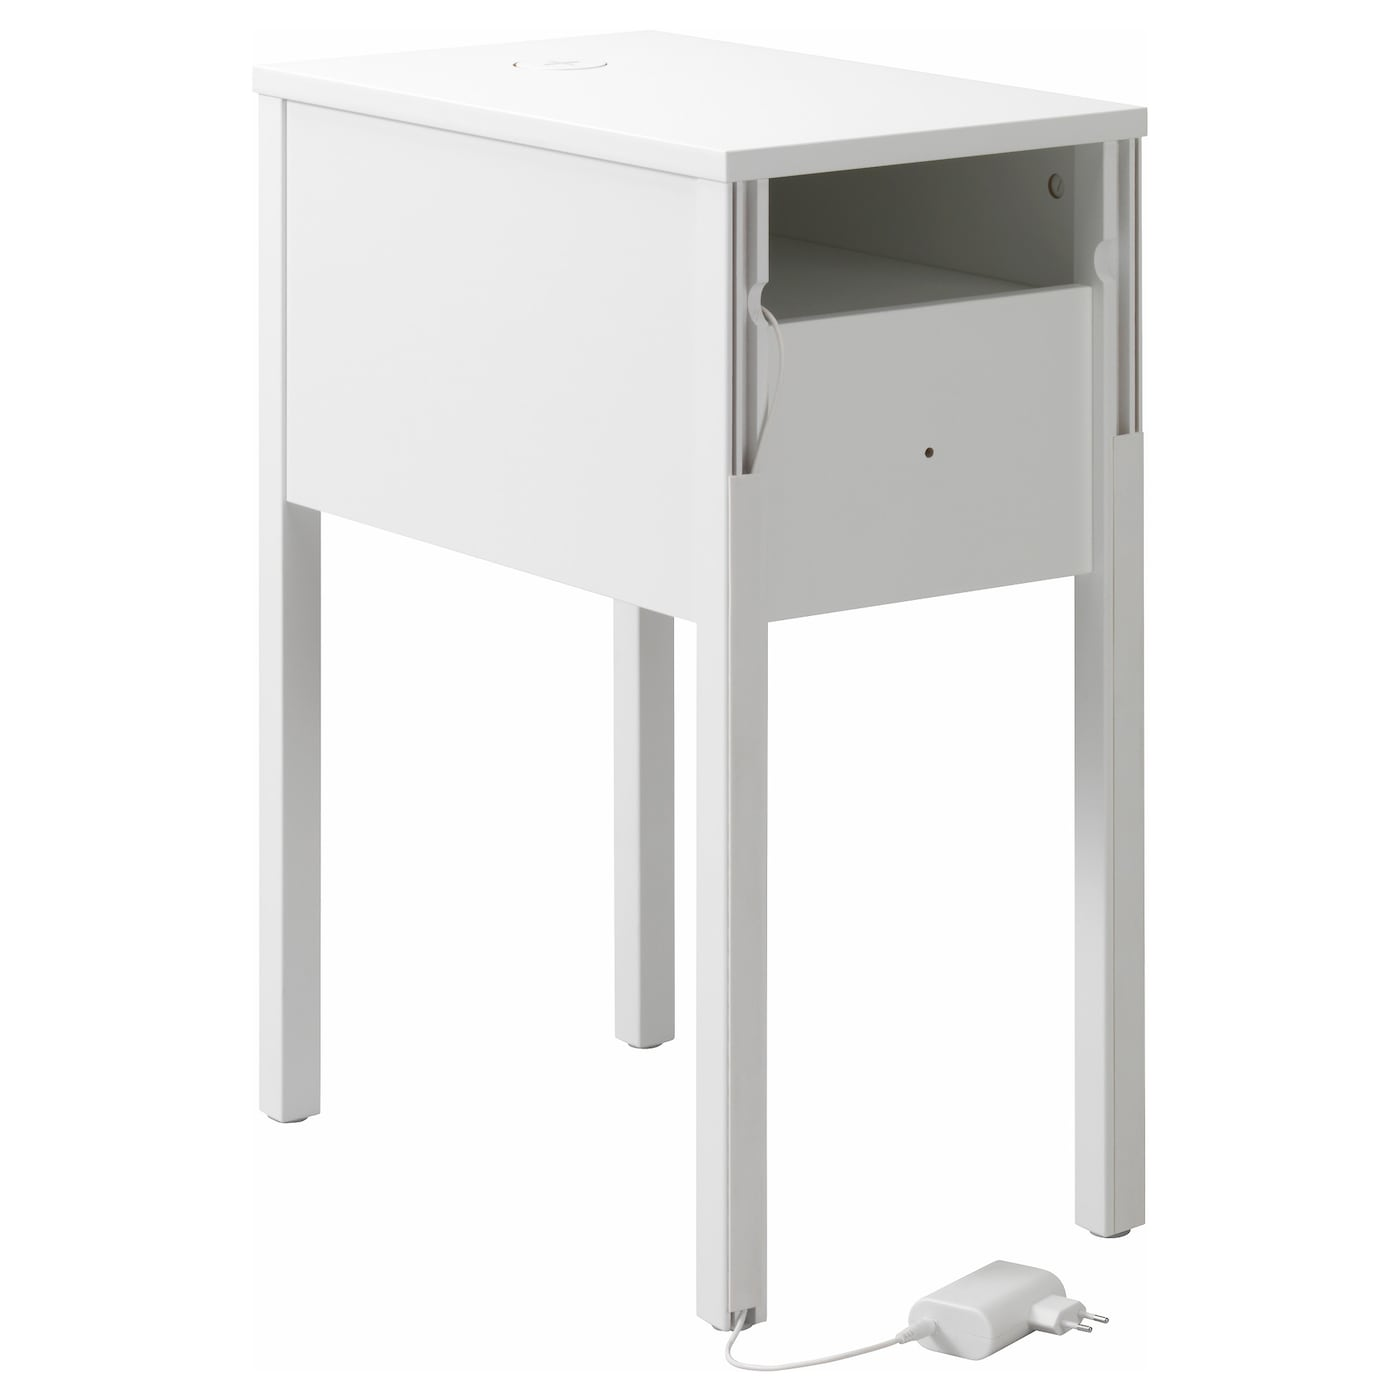 nordli bedside table w wireless charging white 30x50 cm ikea